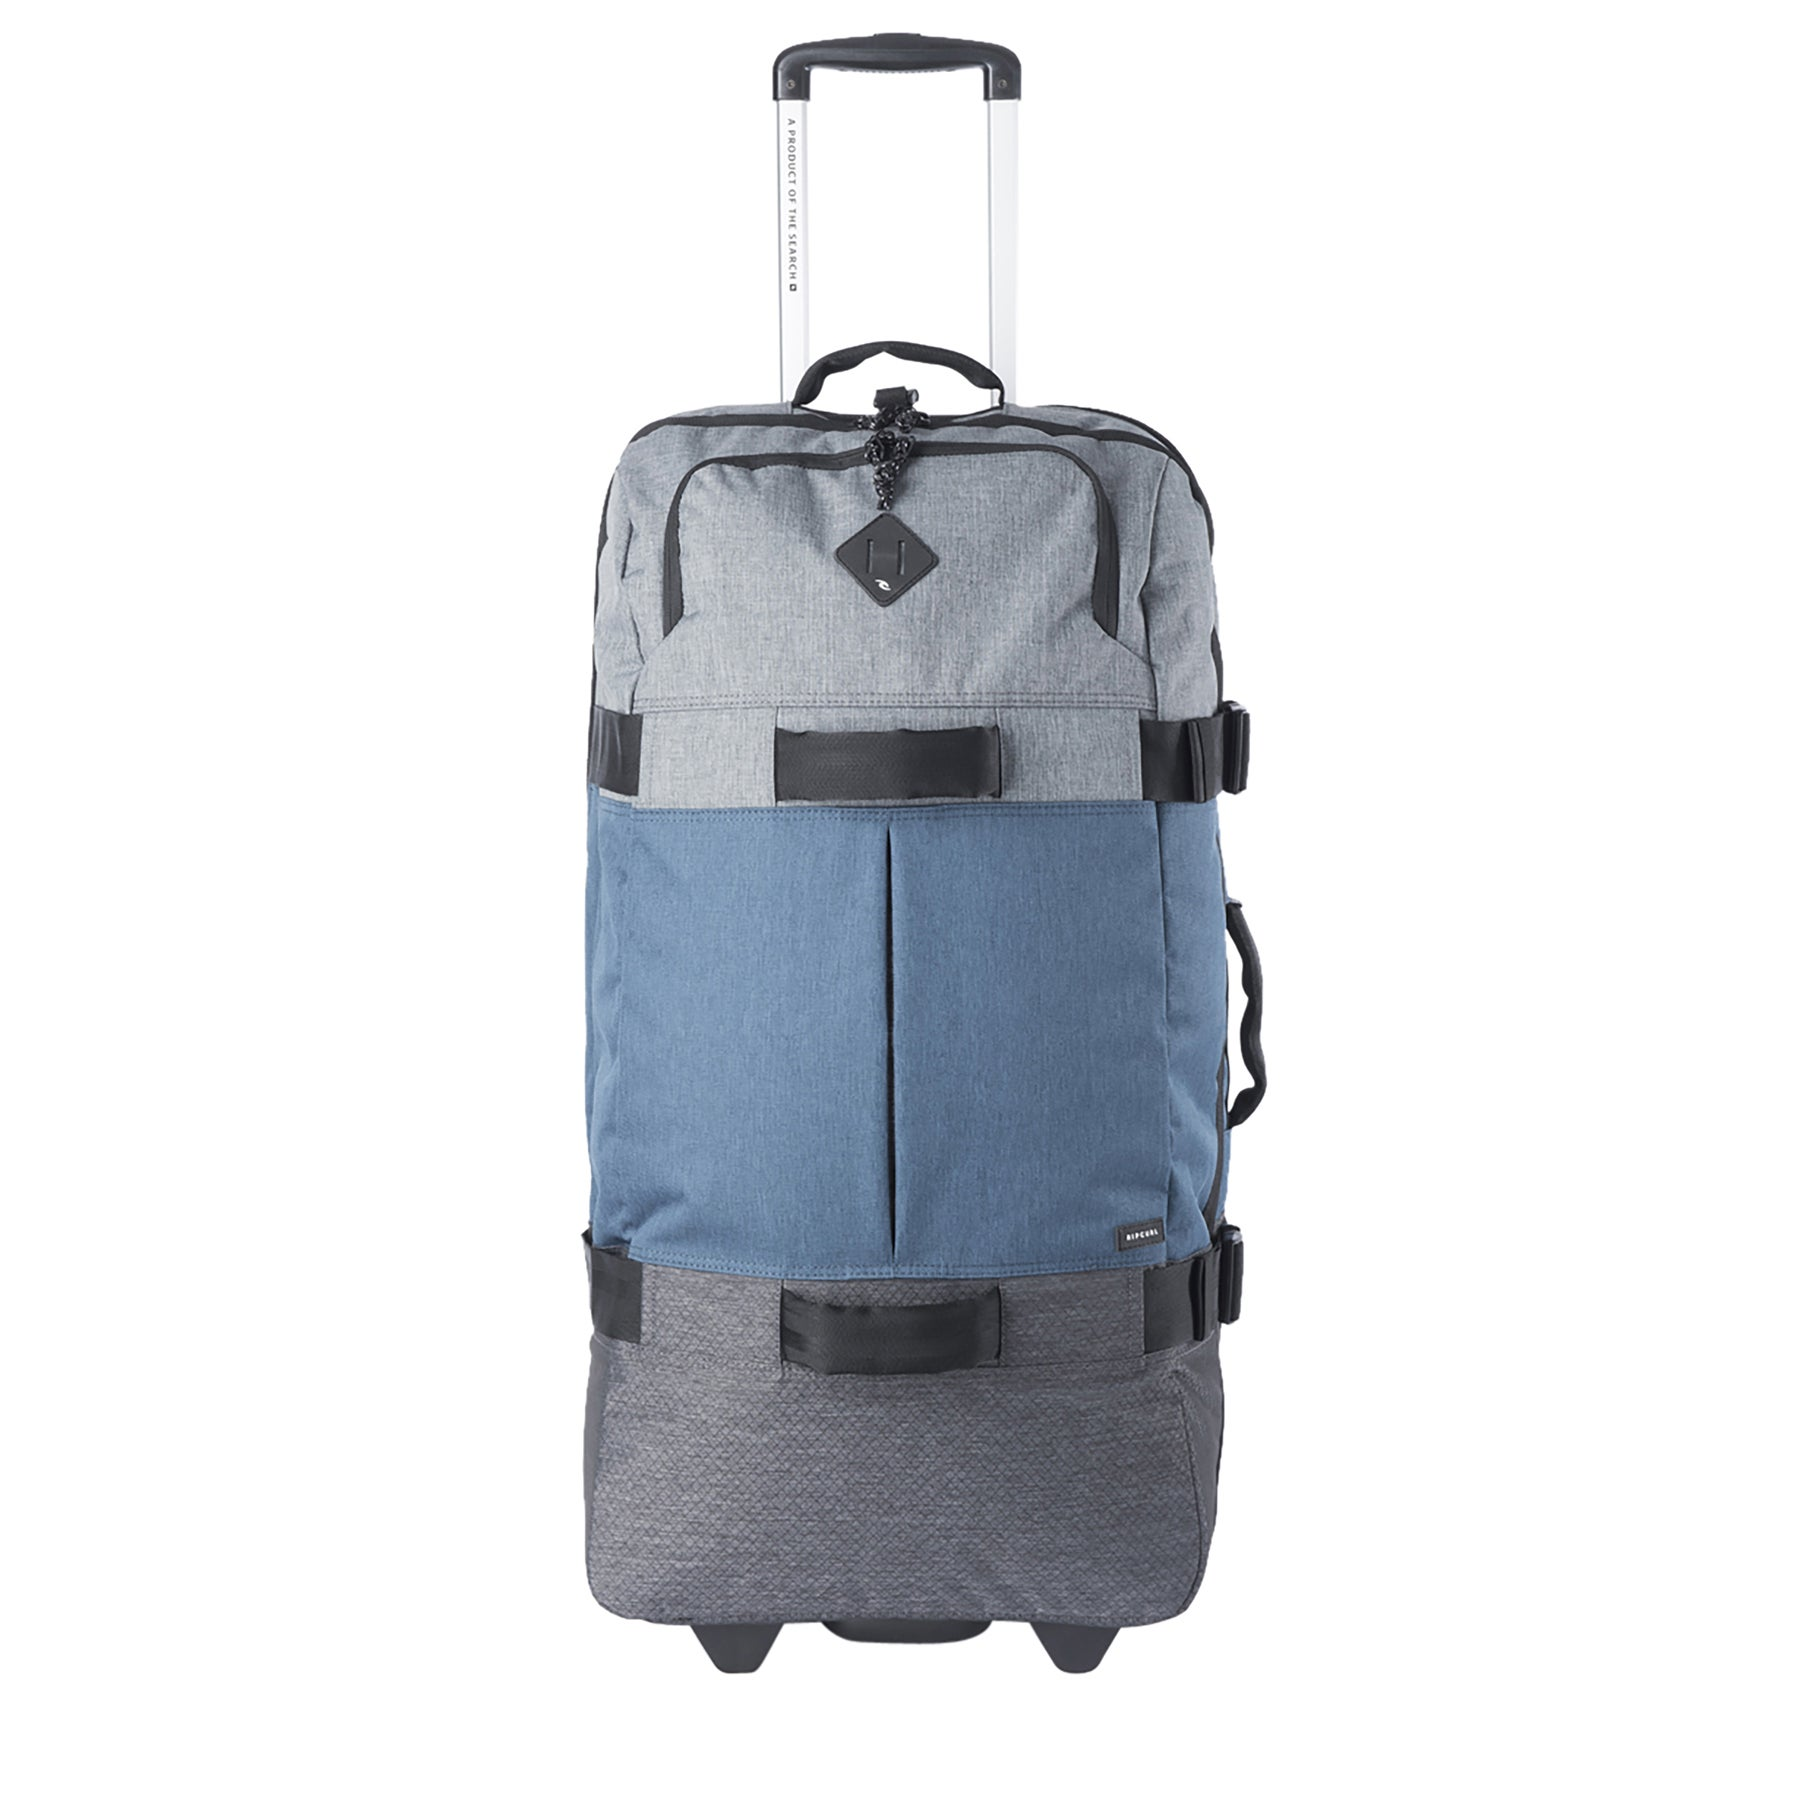 Rip Curl F-light Global Stacka Luggage - Blue